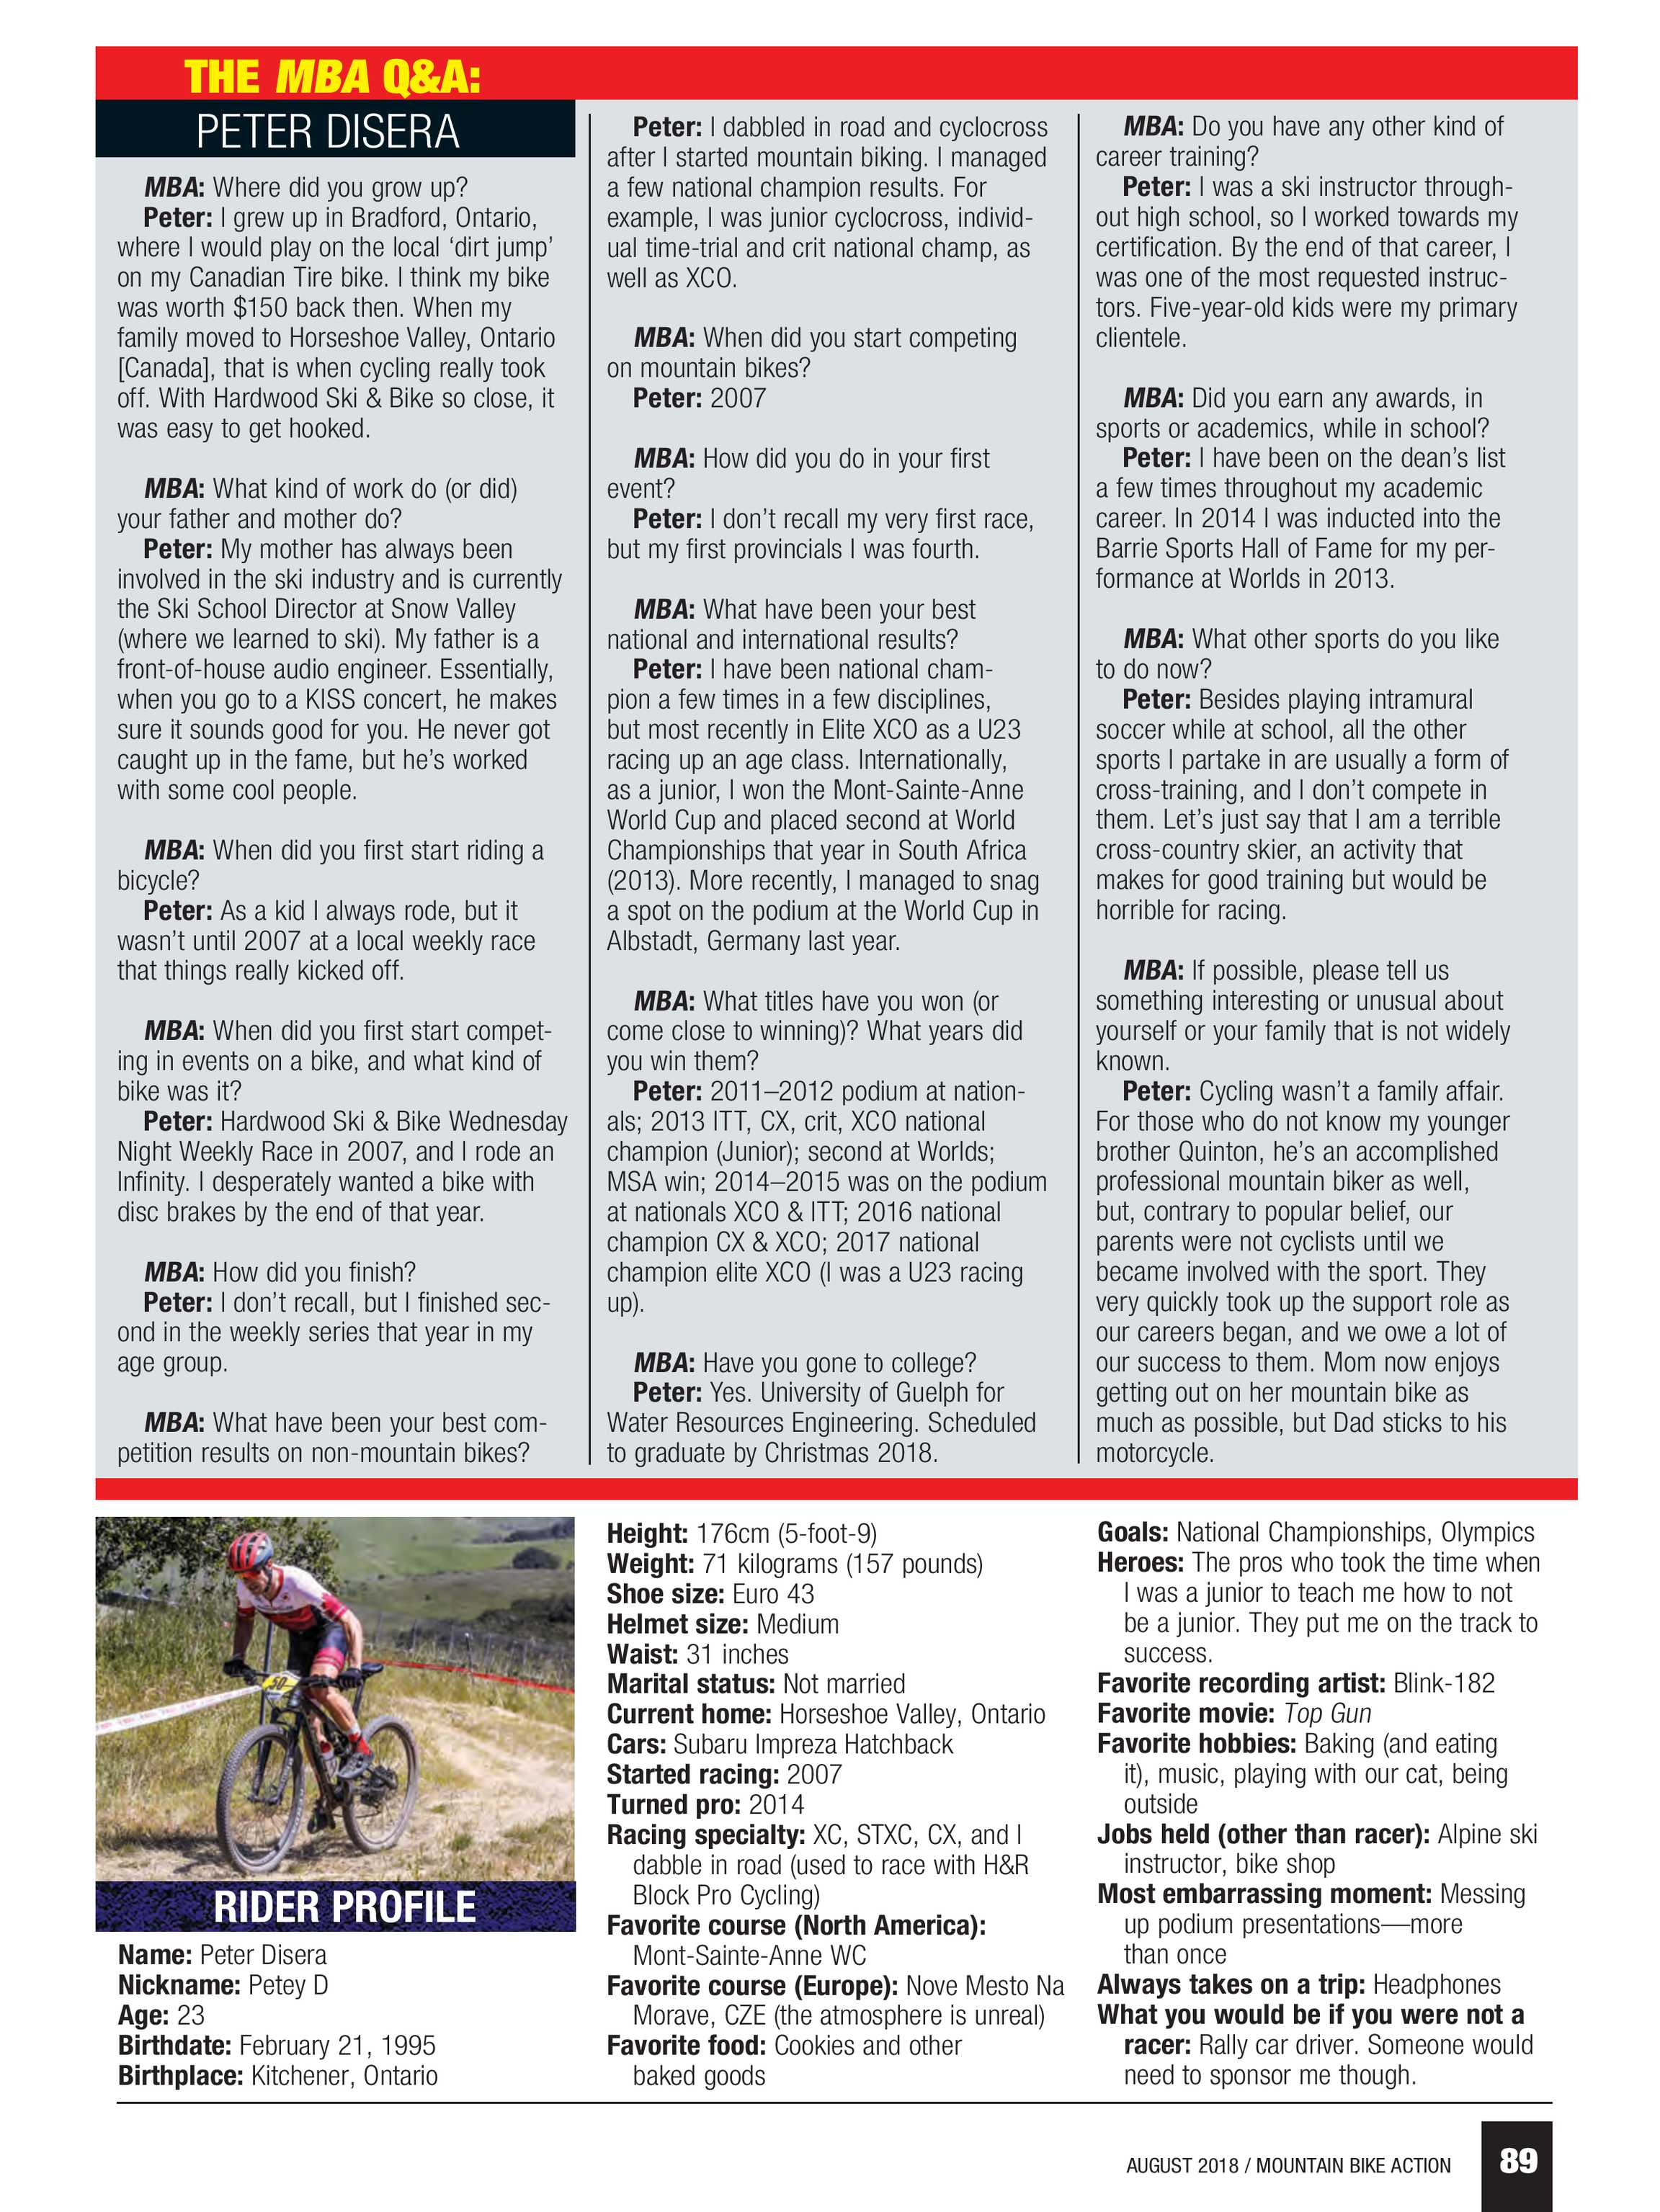 Mountain Bike Action - August 2018 - page 88